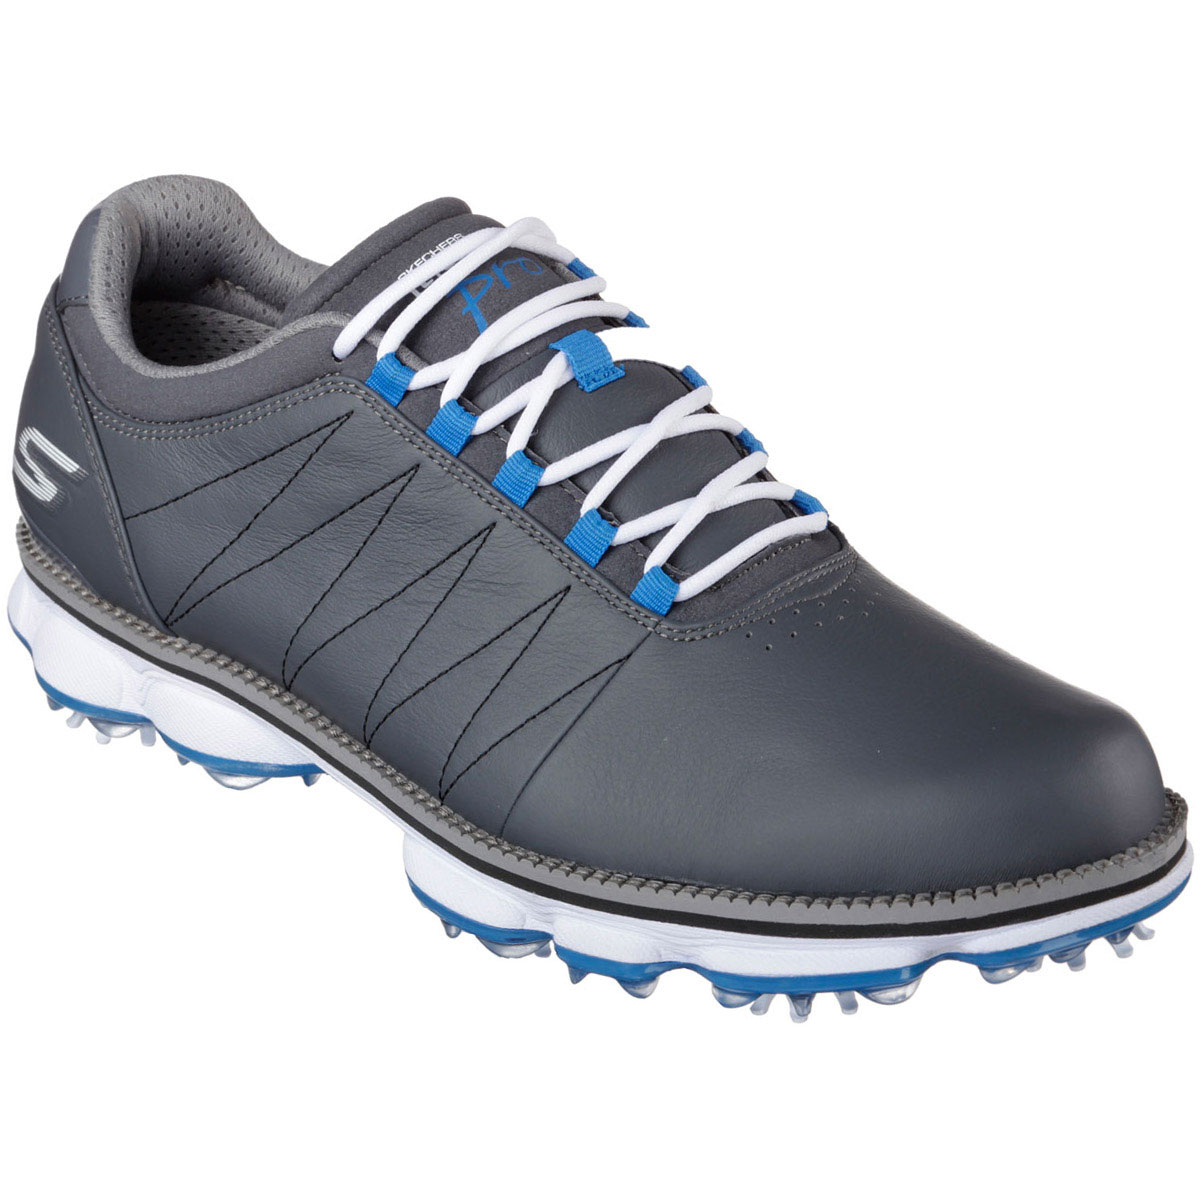 Skechers Men Waterproof Shoes Uk